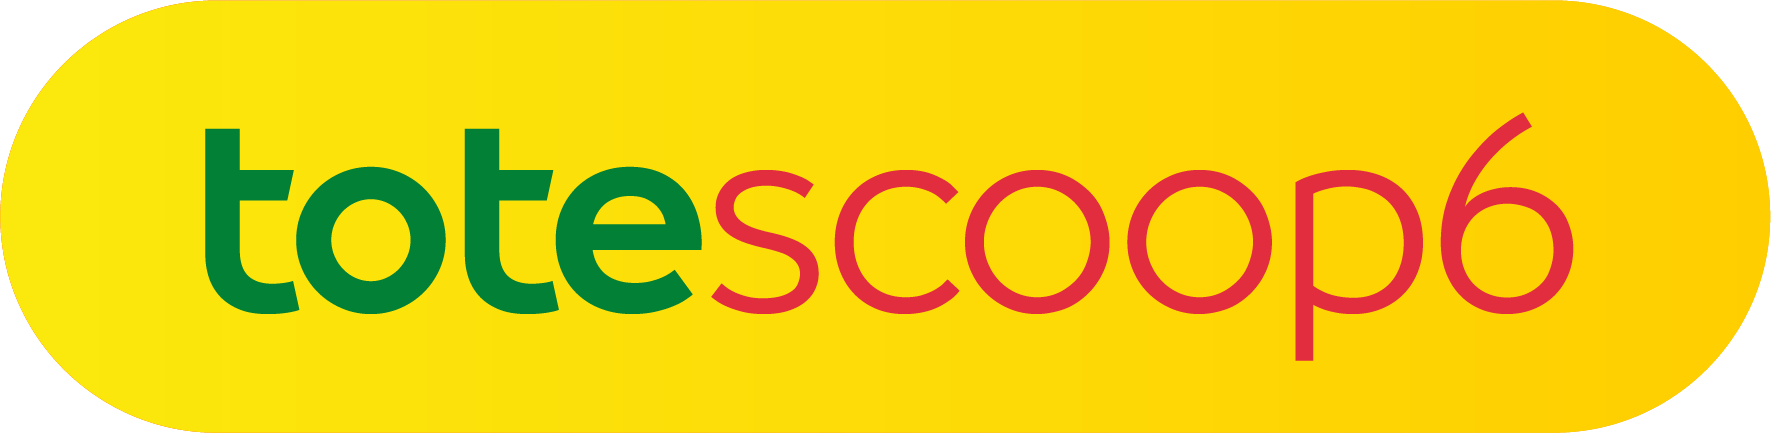 logo-totescoop6-primary.png